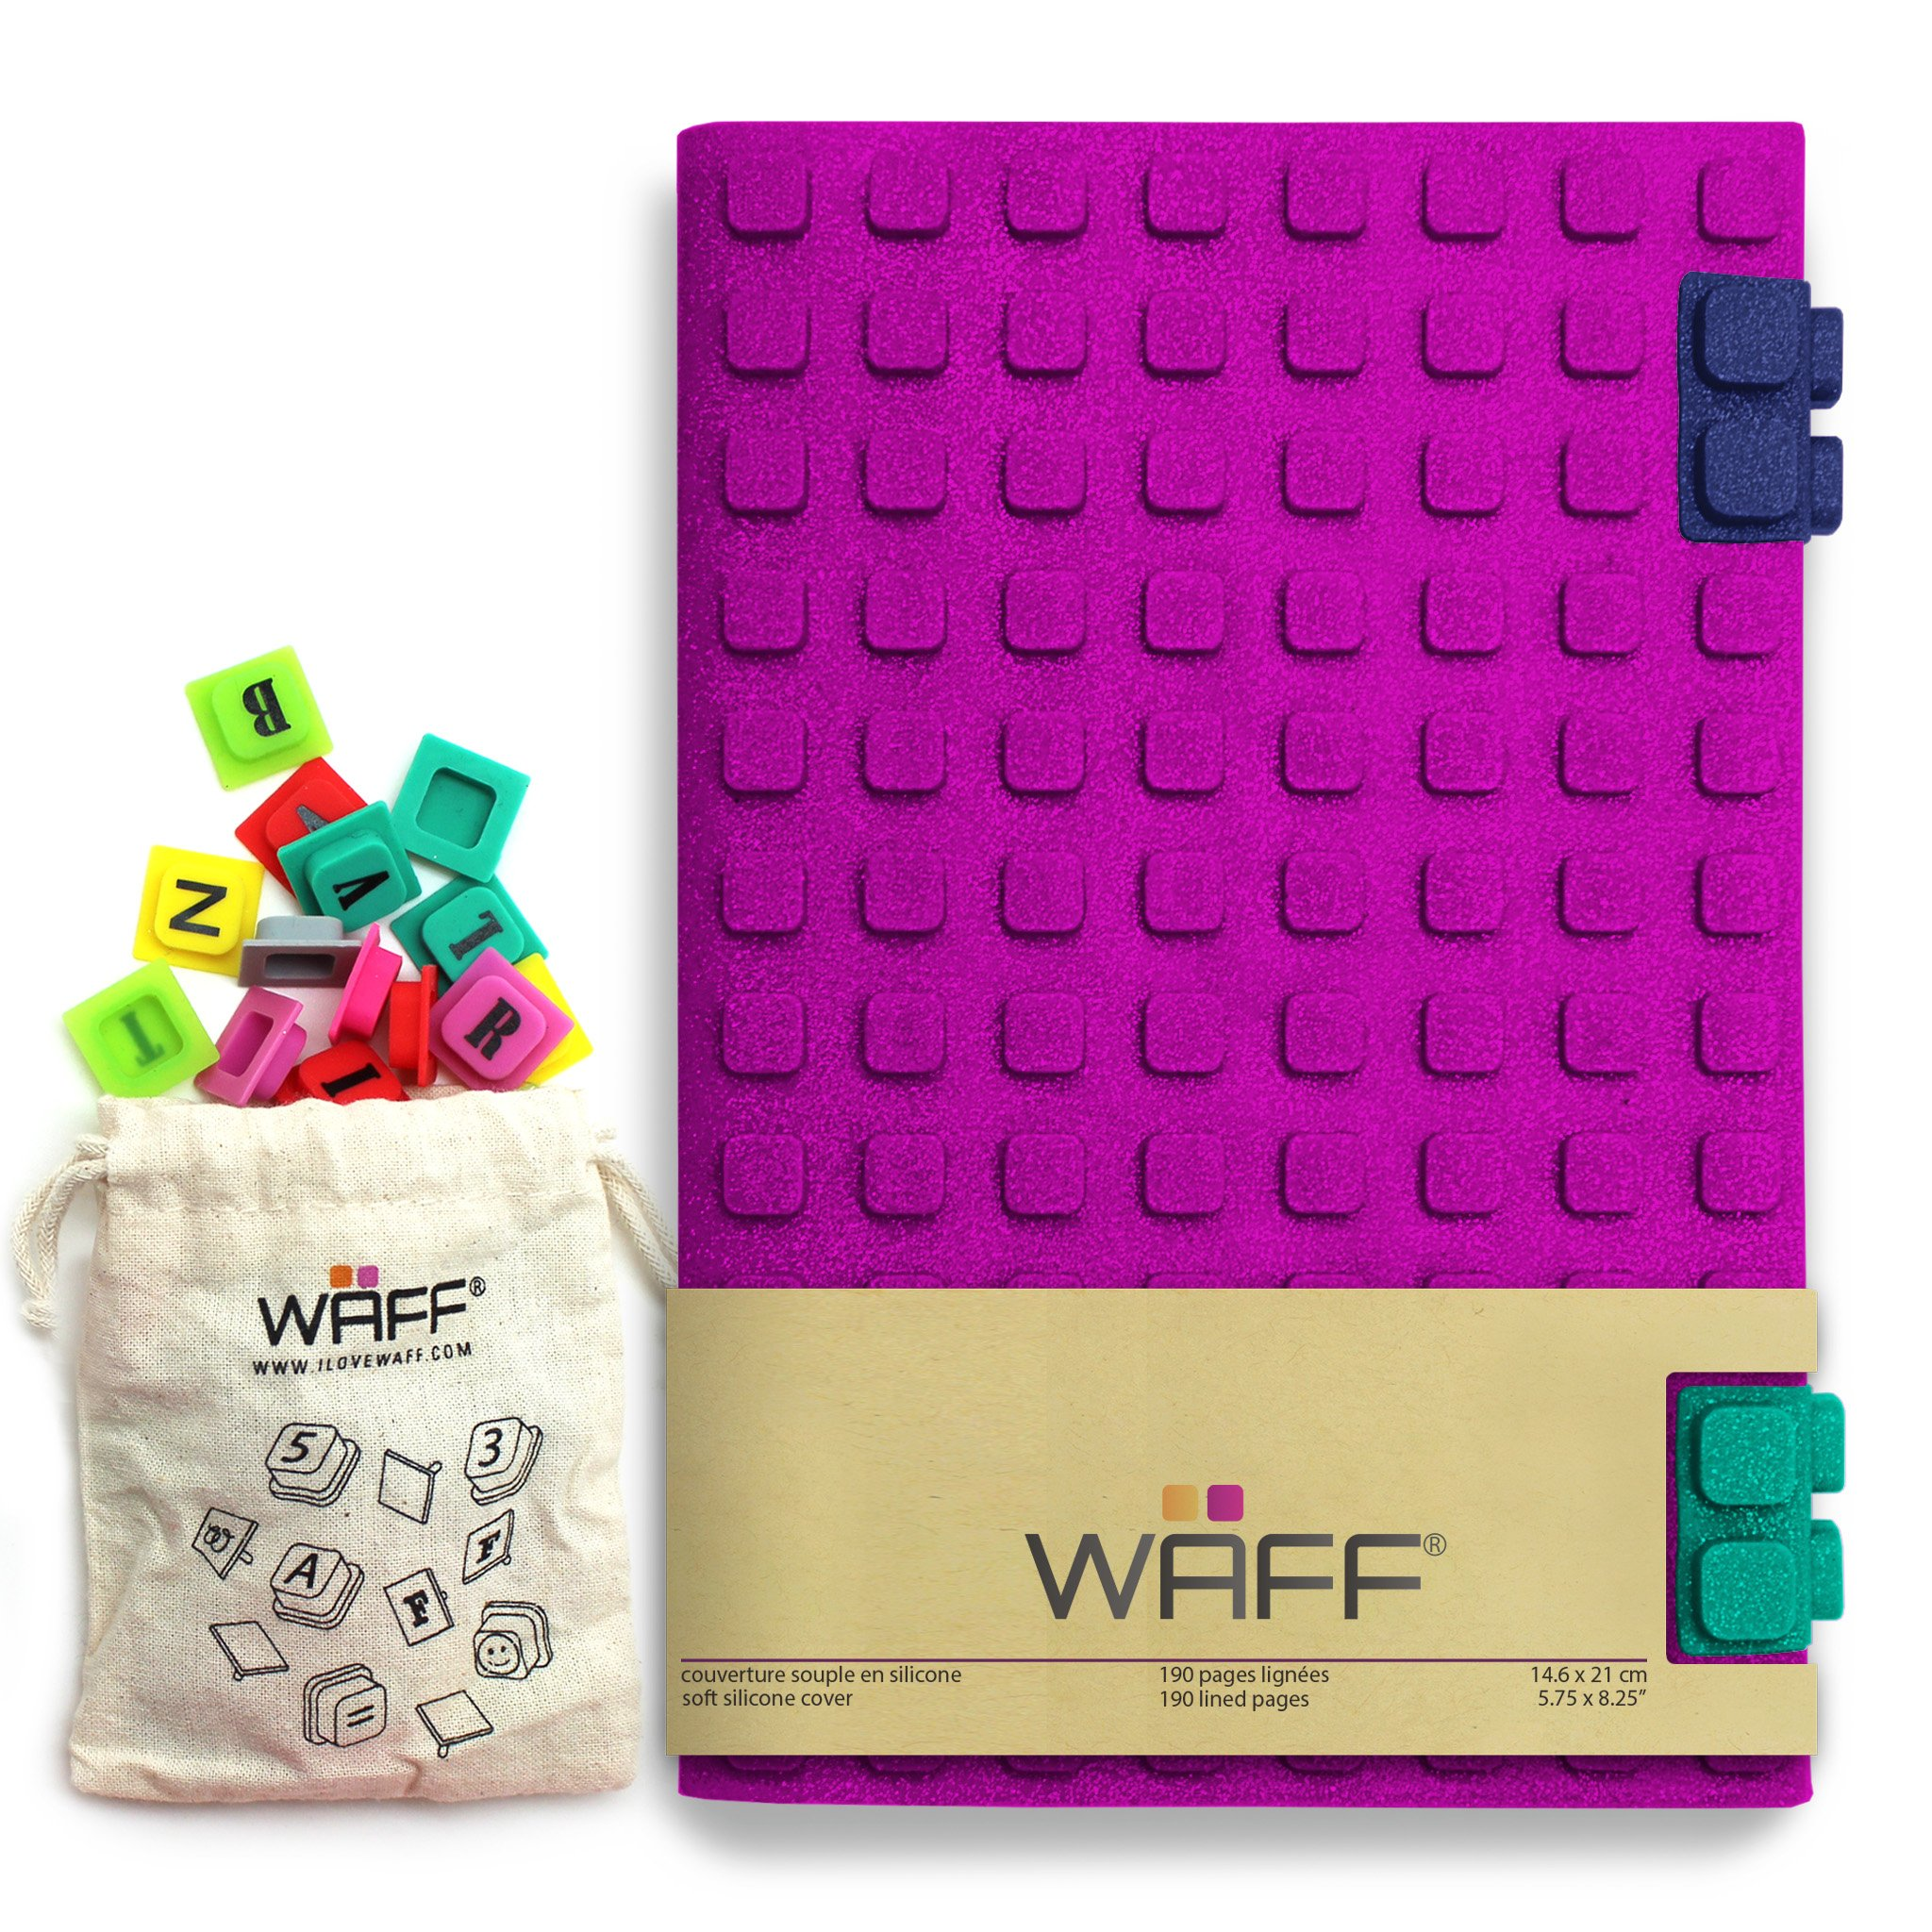 WAFF, Soft Silicone Cube Tiles And Notebook / Journal Combo, Large, 8.25'' x 5.5'' (+ 100 Cubes) - Glitter Fuchsia by WAFF